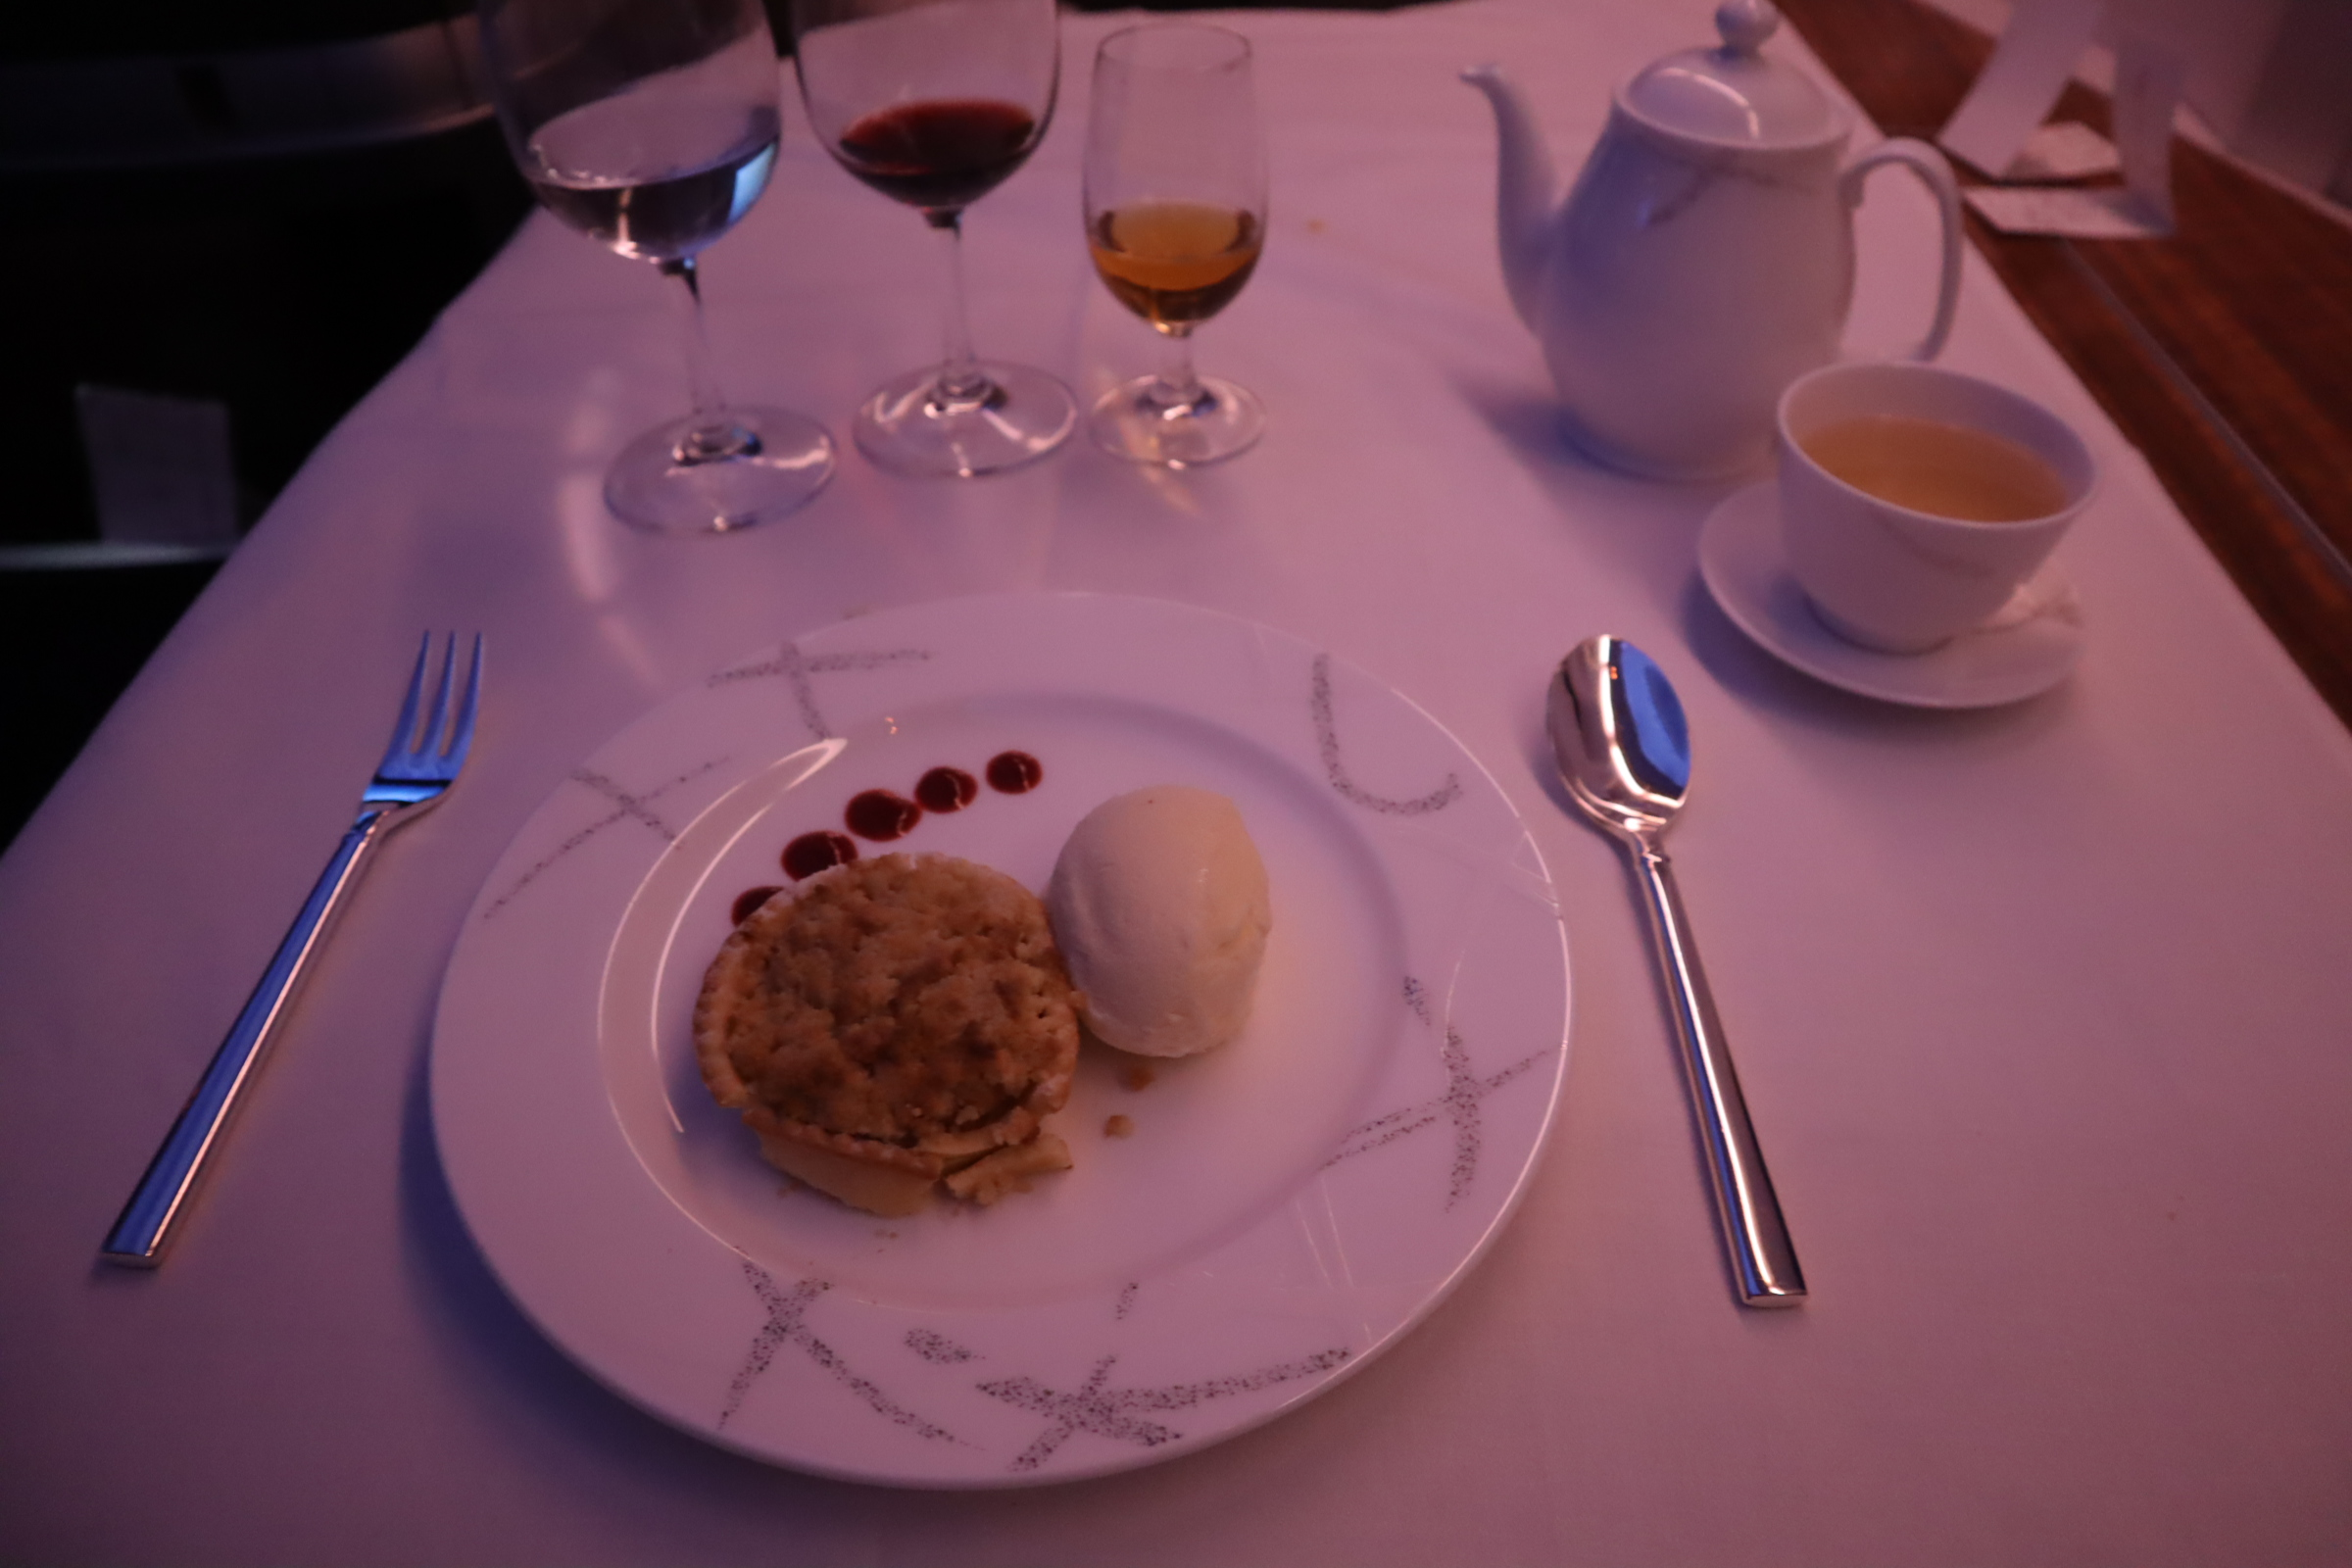 Cathay Pacific First Class – Apple tart with vanilla ice cream